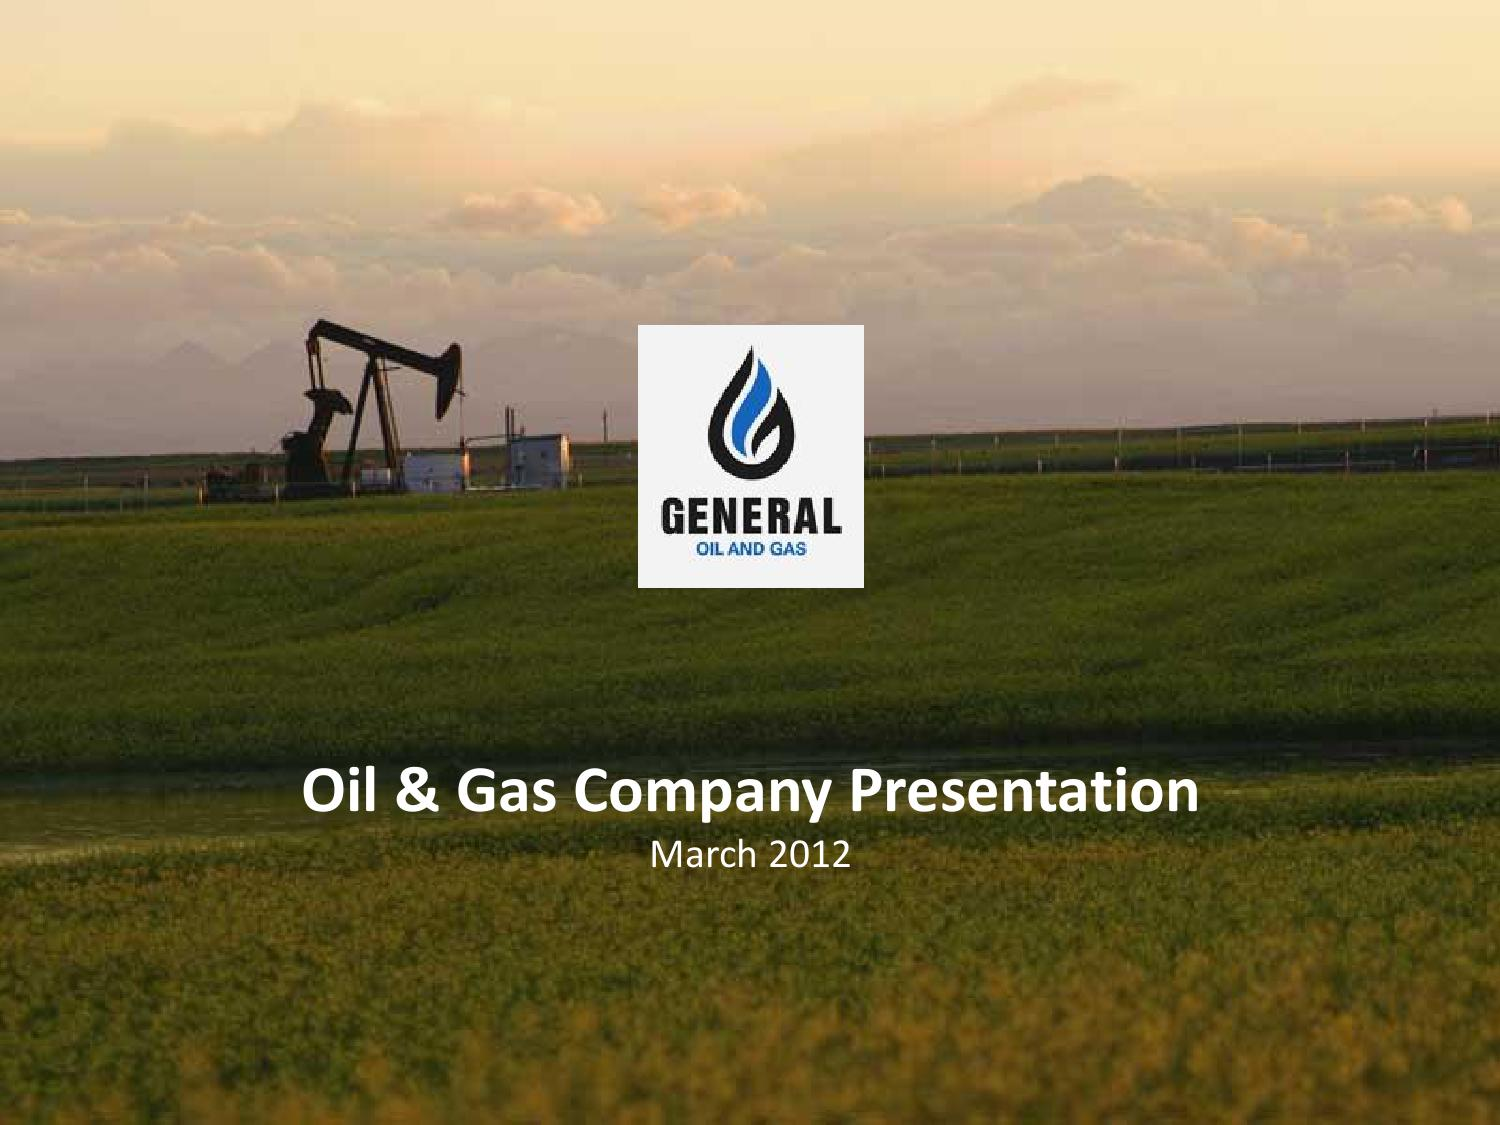 sample business plan powerpoint - oil & gaswanda halpert - issuu, Presentation templates